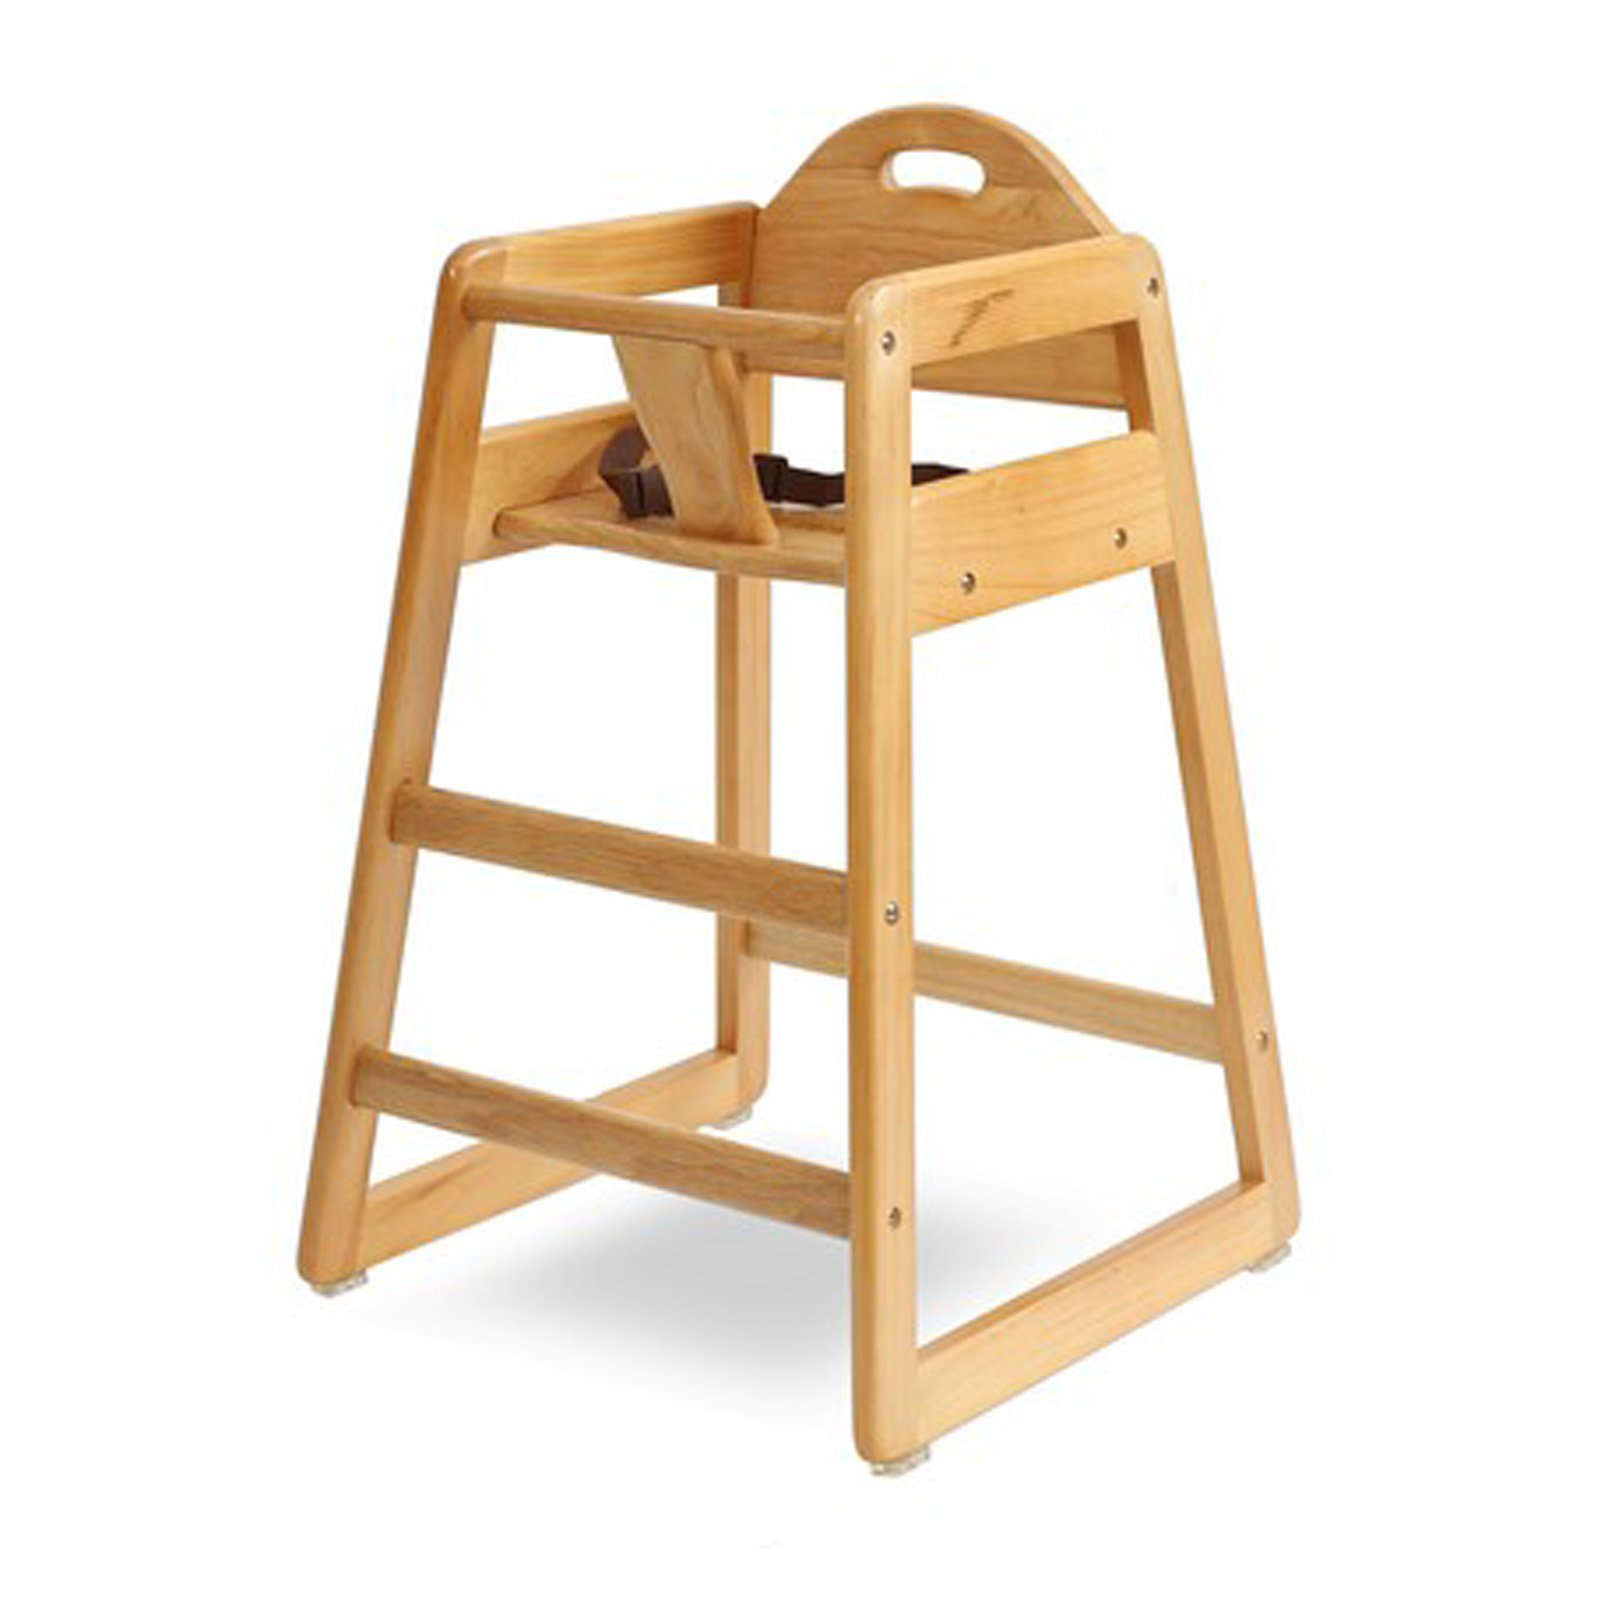 Gentil LA Baby Solid Wood High Chair, Natural